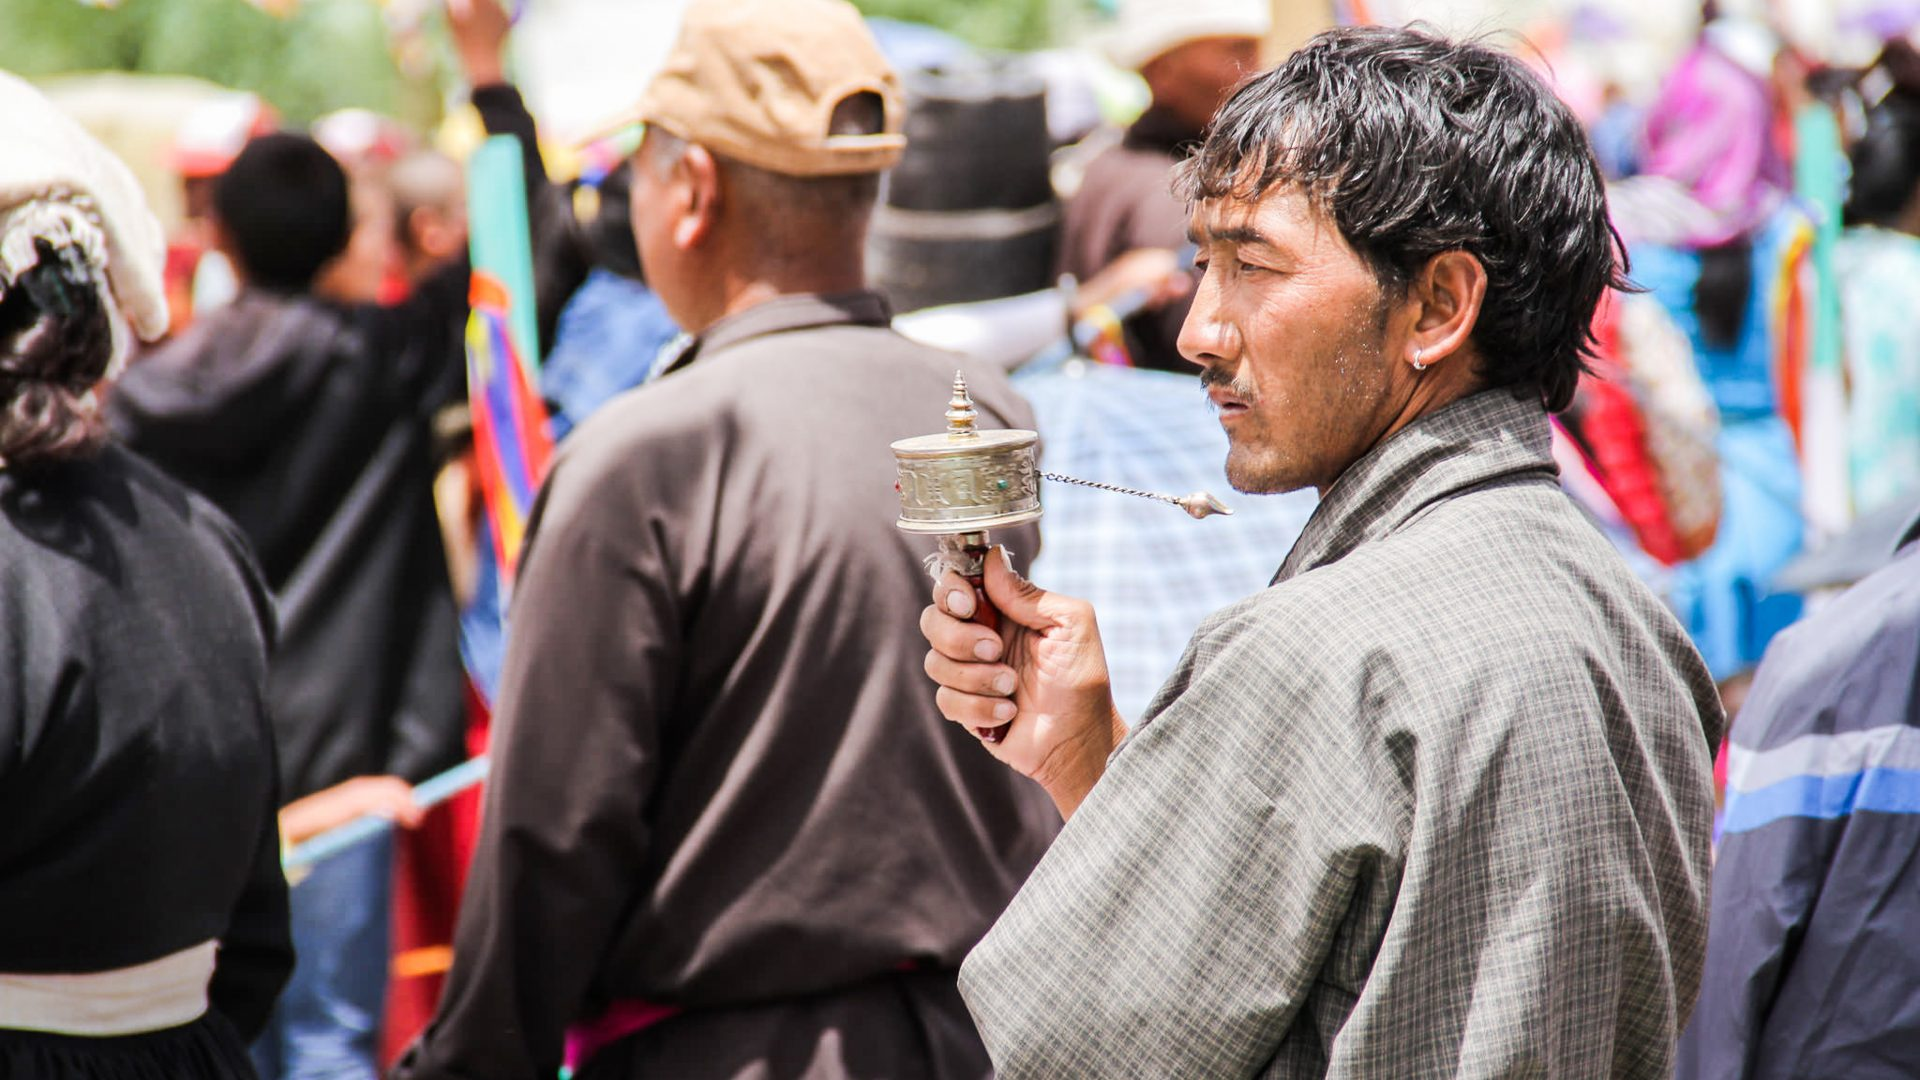 A man spins his personal prayer wheel at the Buddhist festival in Ladakh in the Himalayas